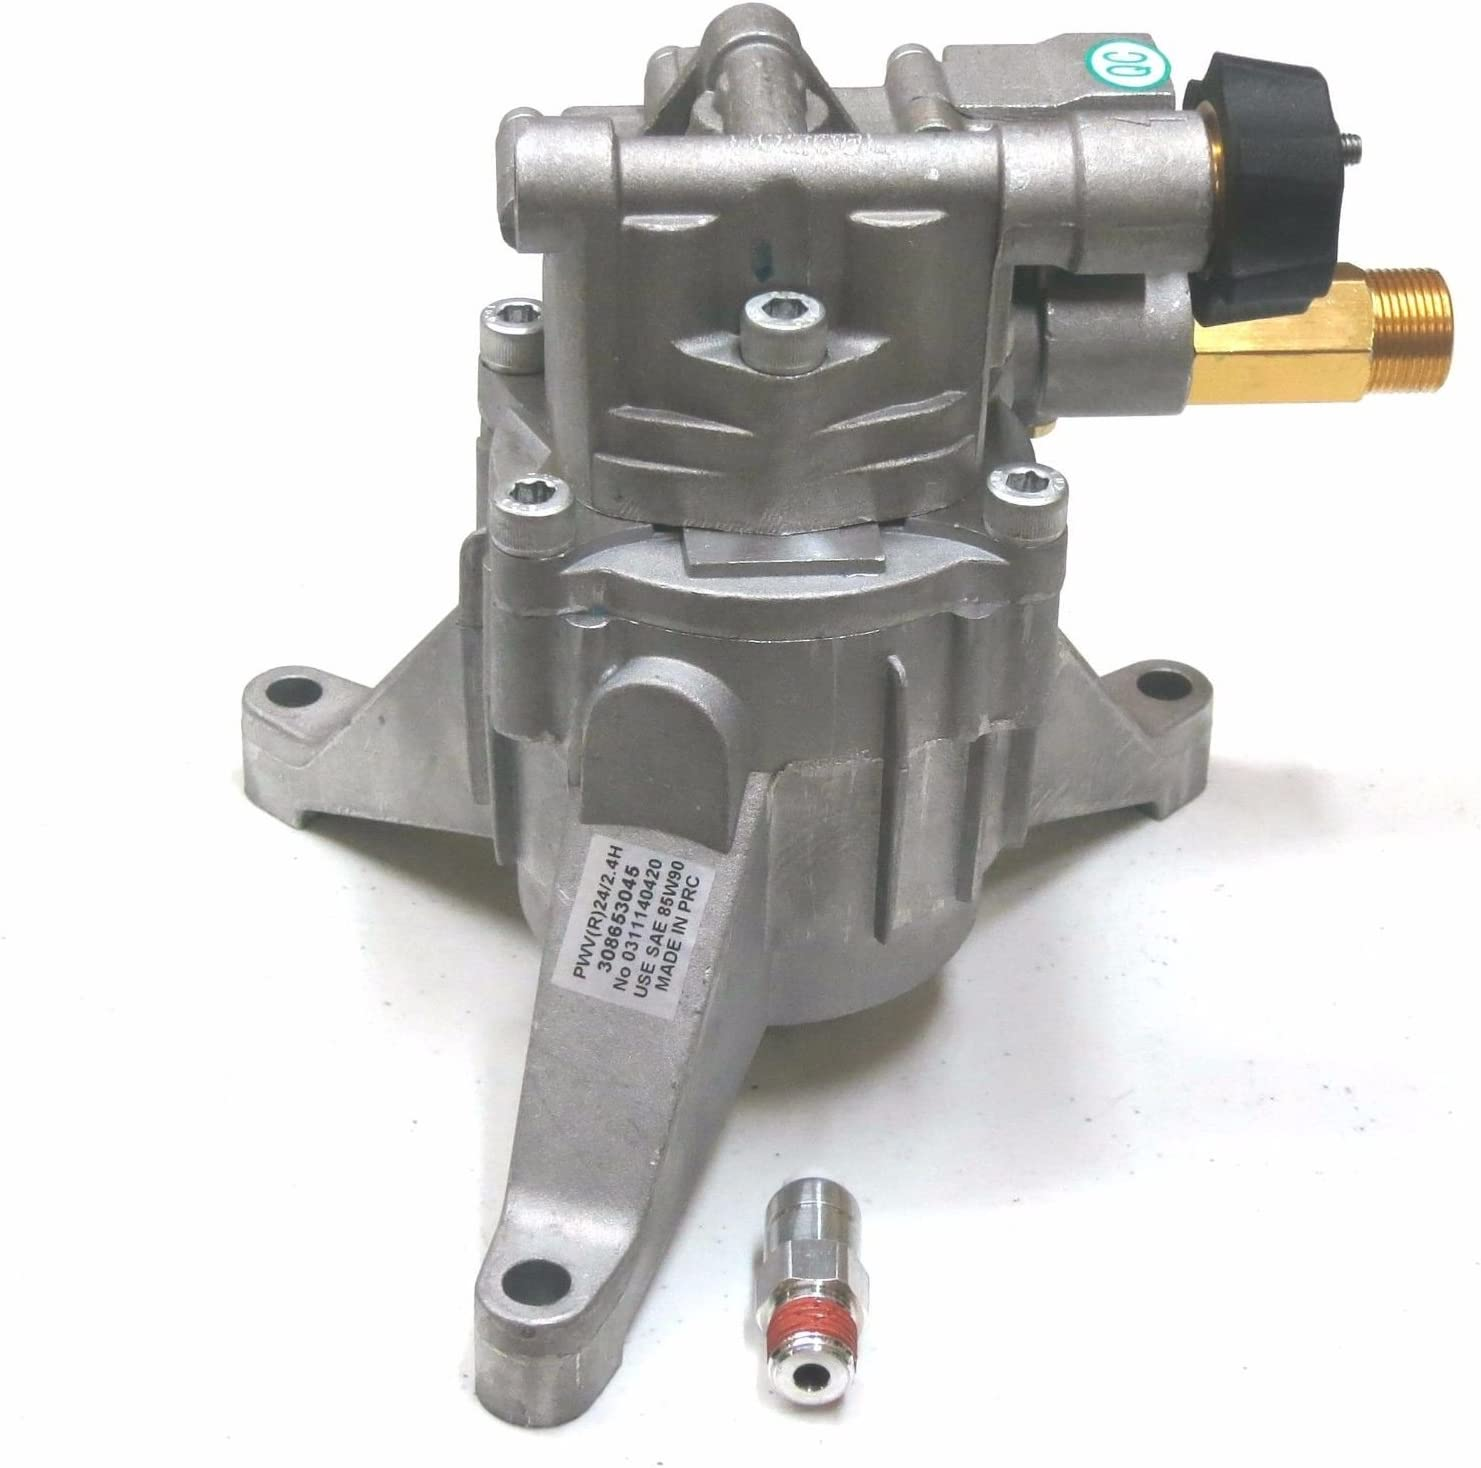 New 2700 PSI PRESSURE WASHER WATER PUMP Water Driver DT2200P DT1600E